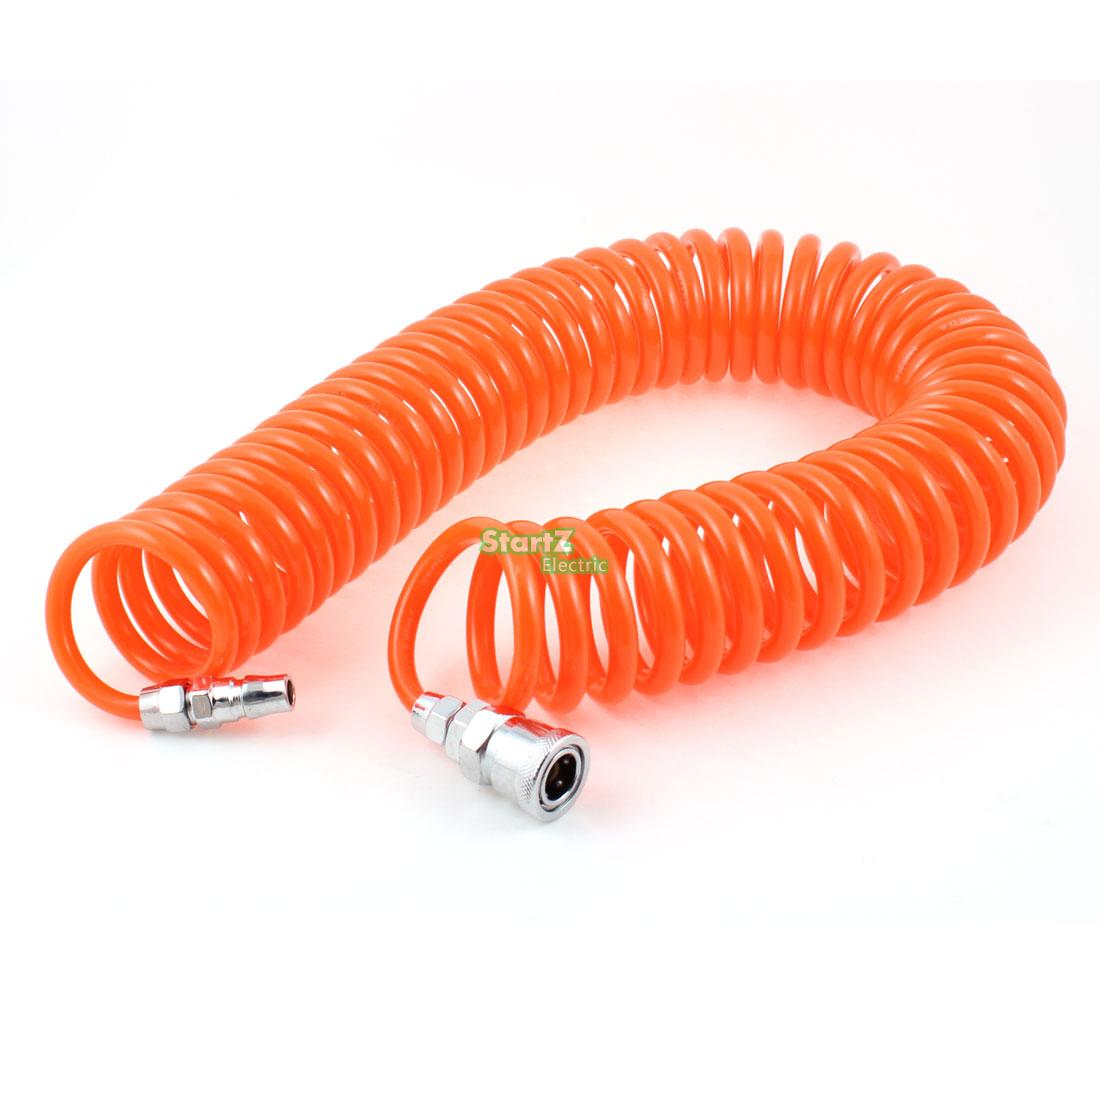 12M 39 Ft 8mm x 5mm Polyurethane PU Recoil Air Compressor Hose Tube Orange Red стоимость